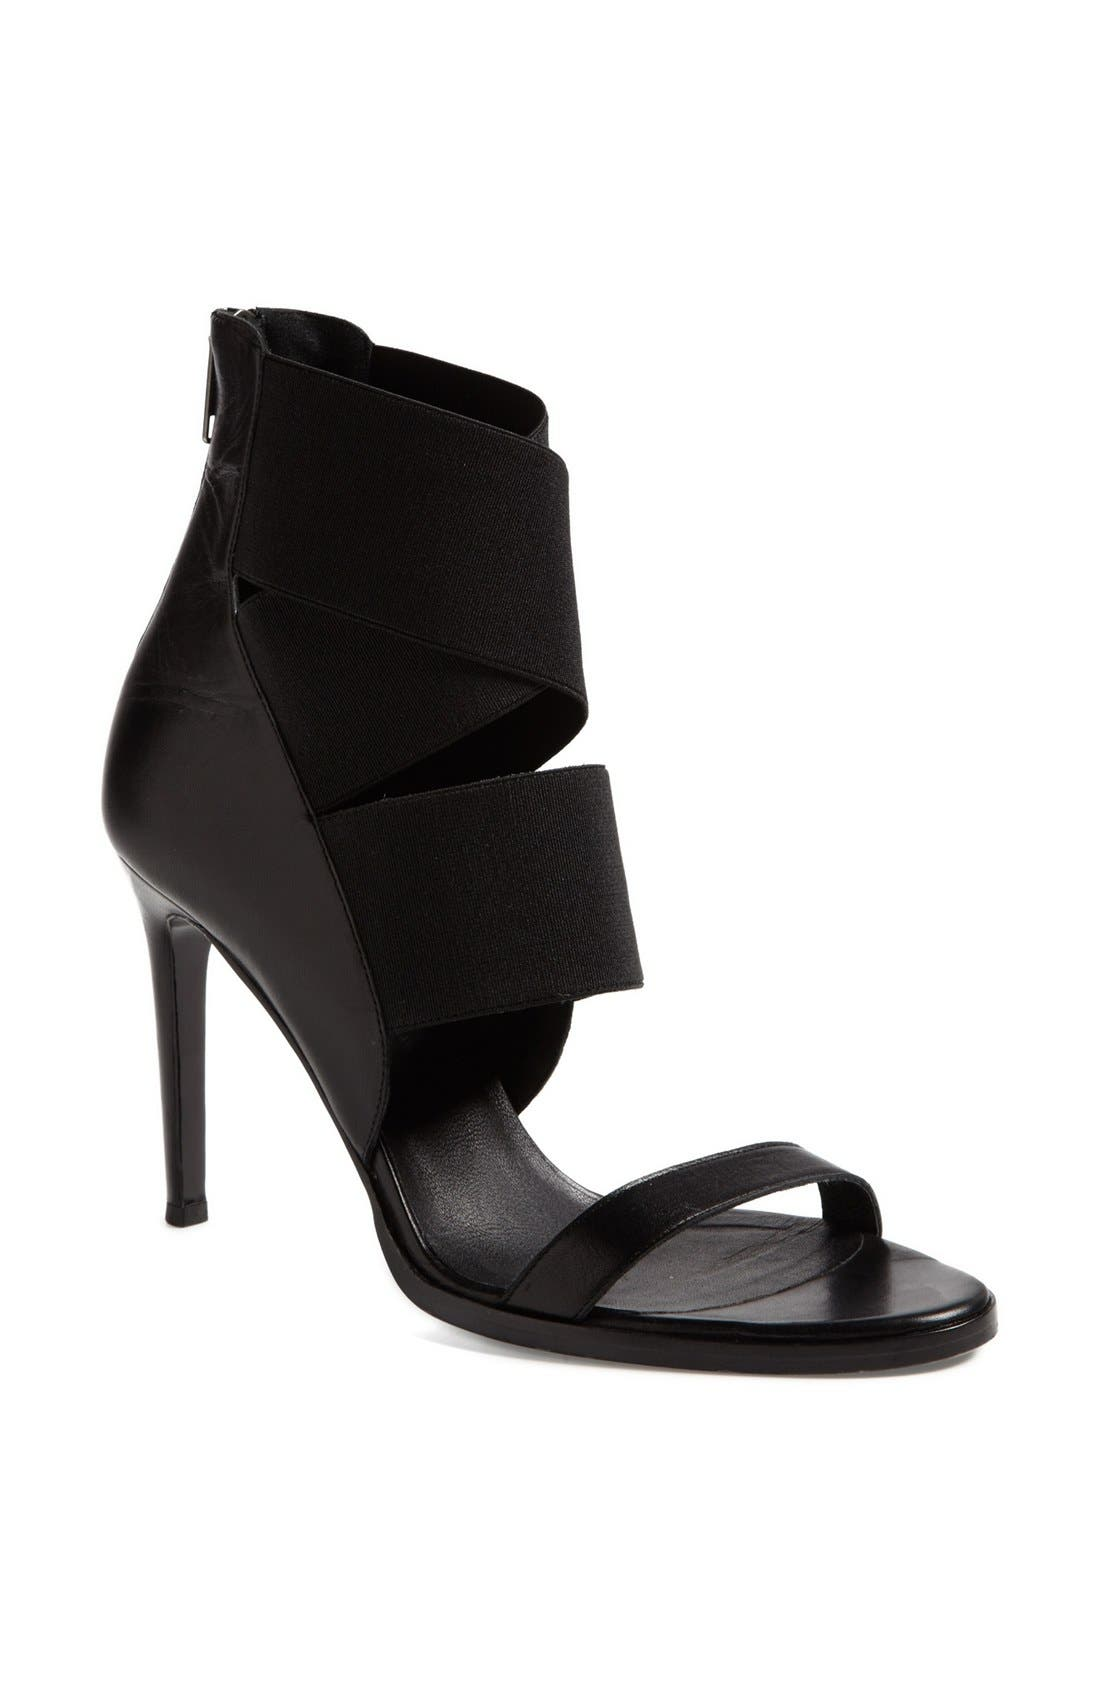 Alternate Image 1 Selected - Helmut Lang 'Silt' Sandal (Online Only)